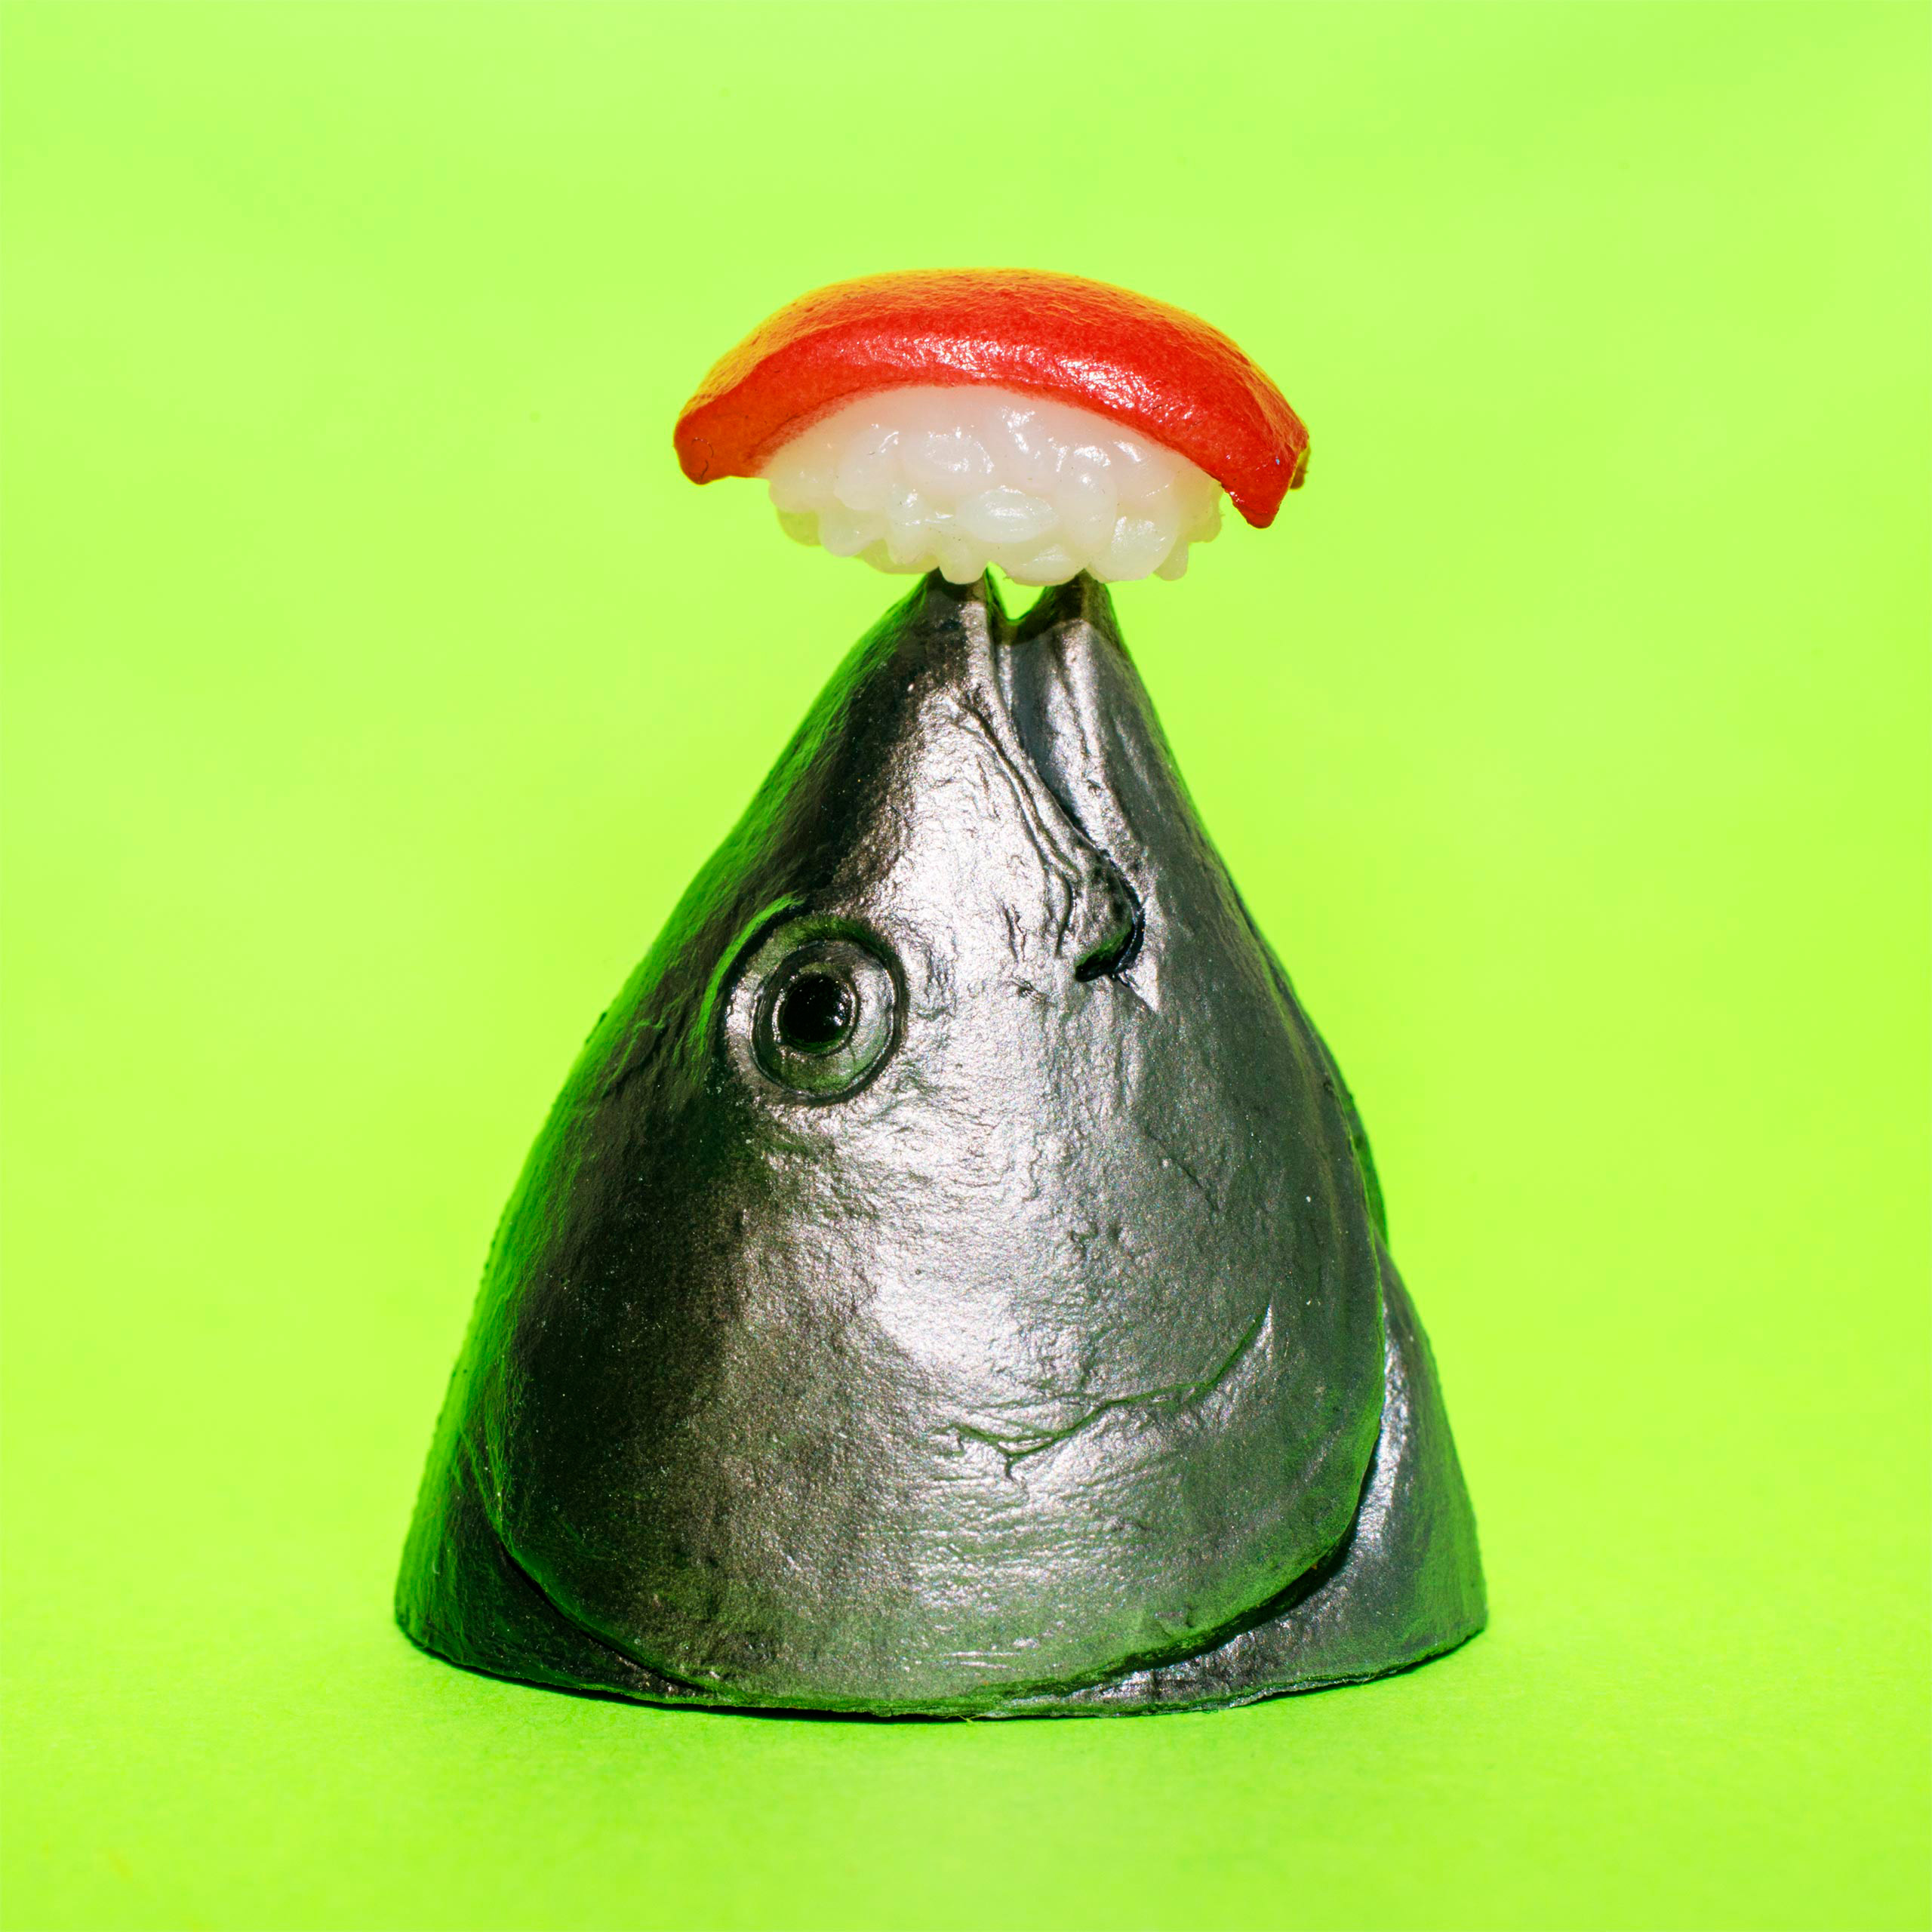 #tuna #kiss #sushi #this #thingsarequeer